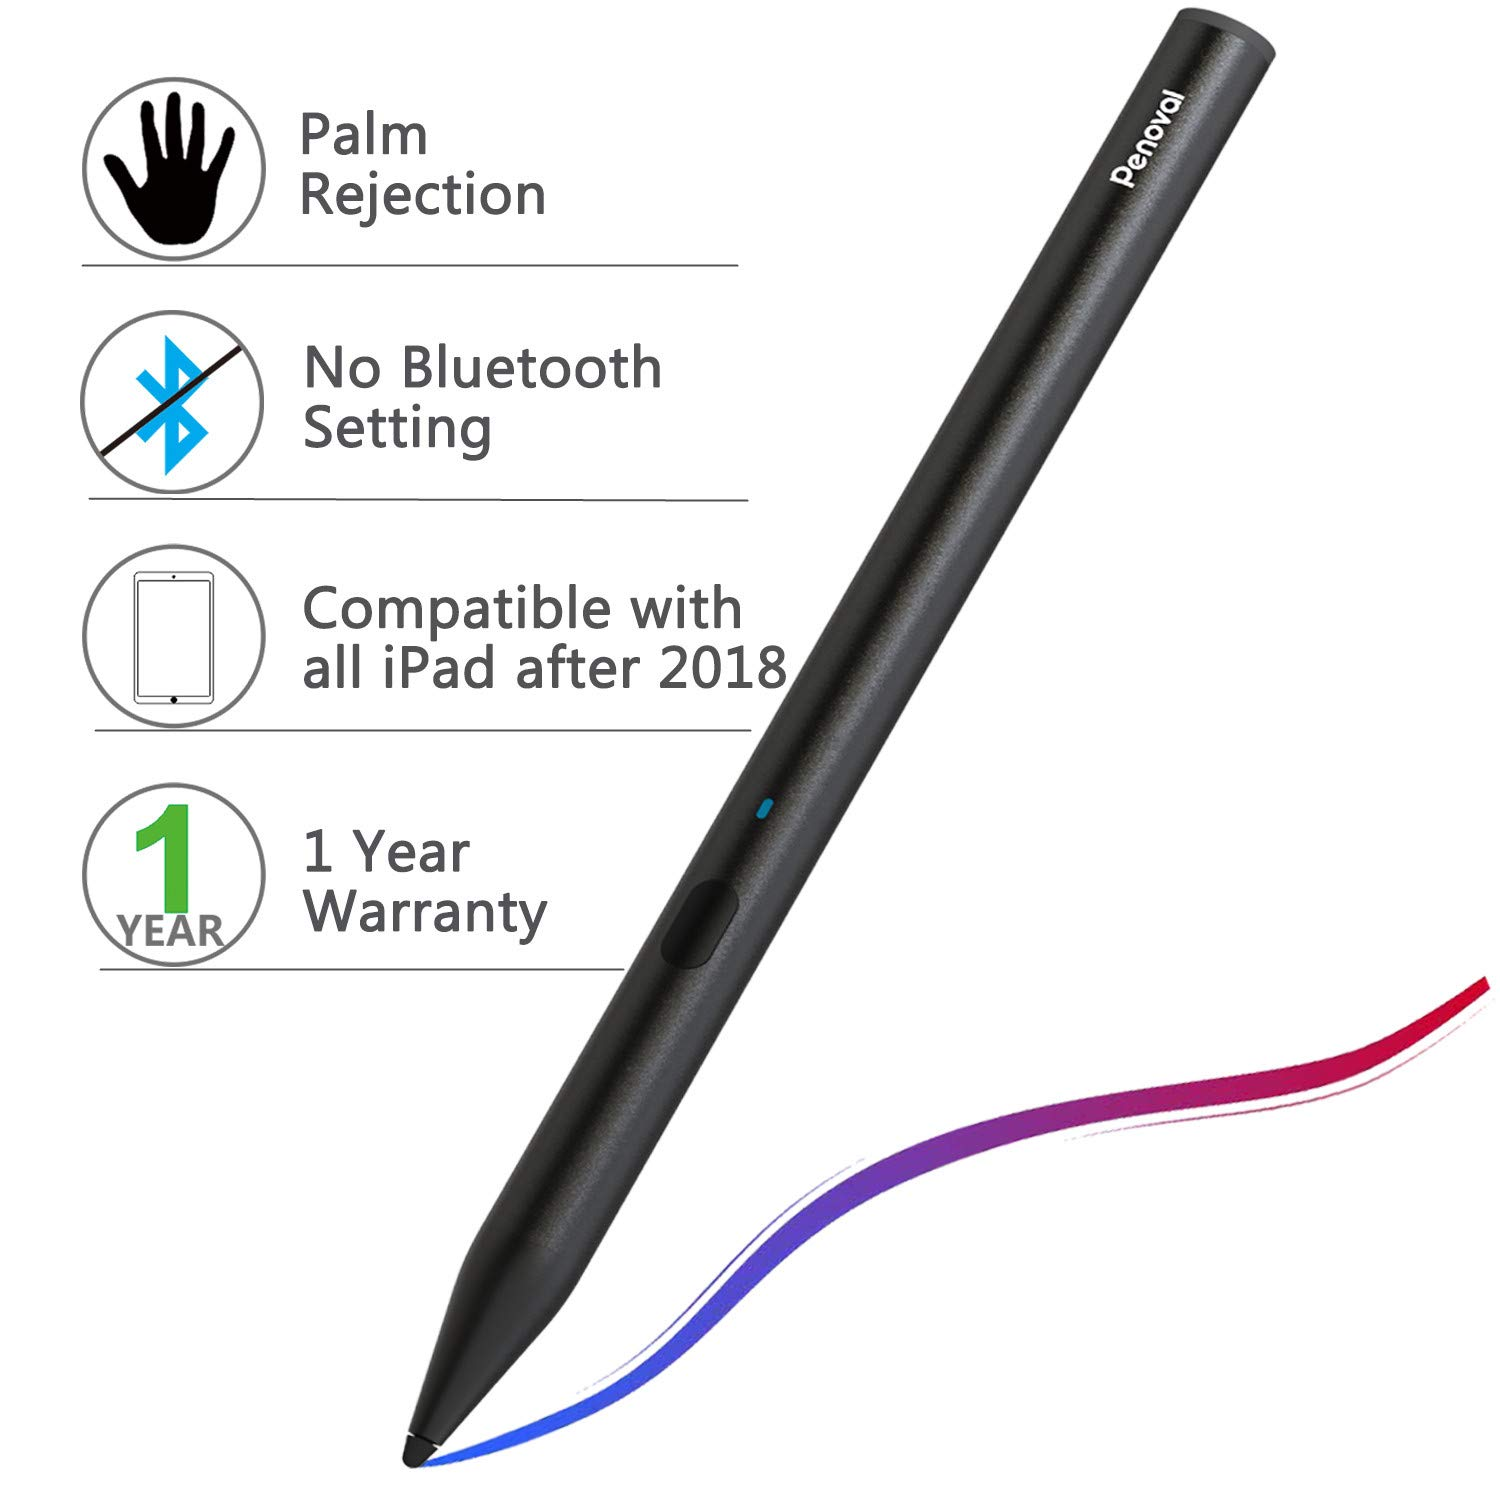 Upgraded Stylus Pen with Palm Rejection 5th Gen 6th Gen //Air 3rd Gen //iPad Pro 11//12.9 Inch//Mini Type-C Rechargeable Digital Pencil FOJOJO Active Stylus Compatible with Apple iPad